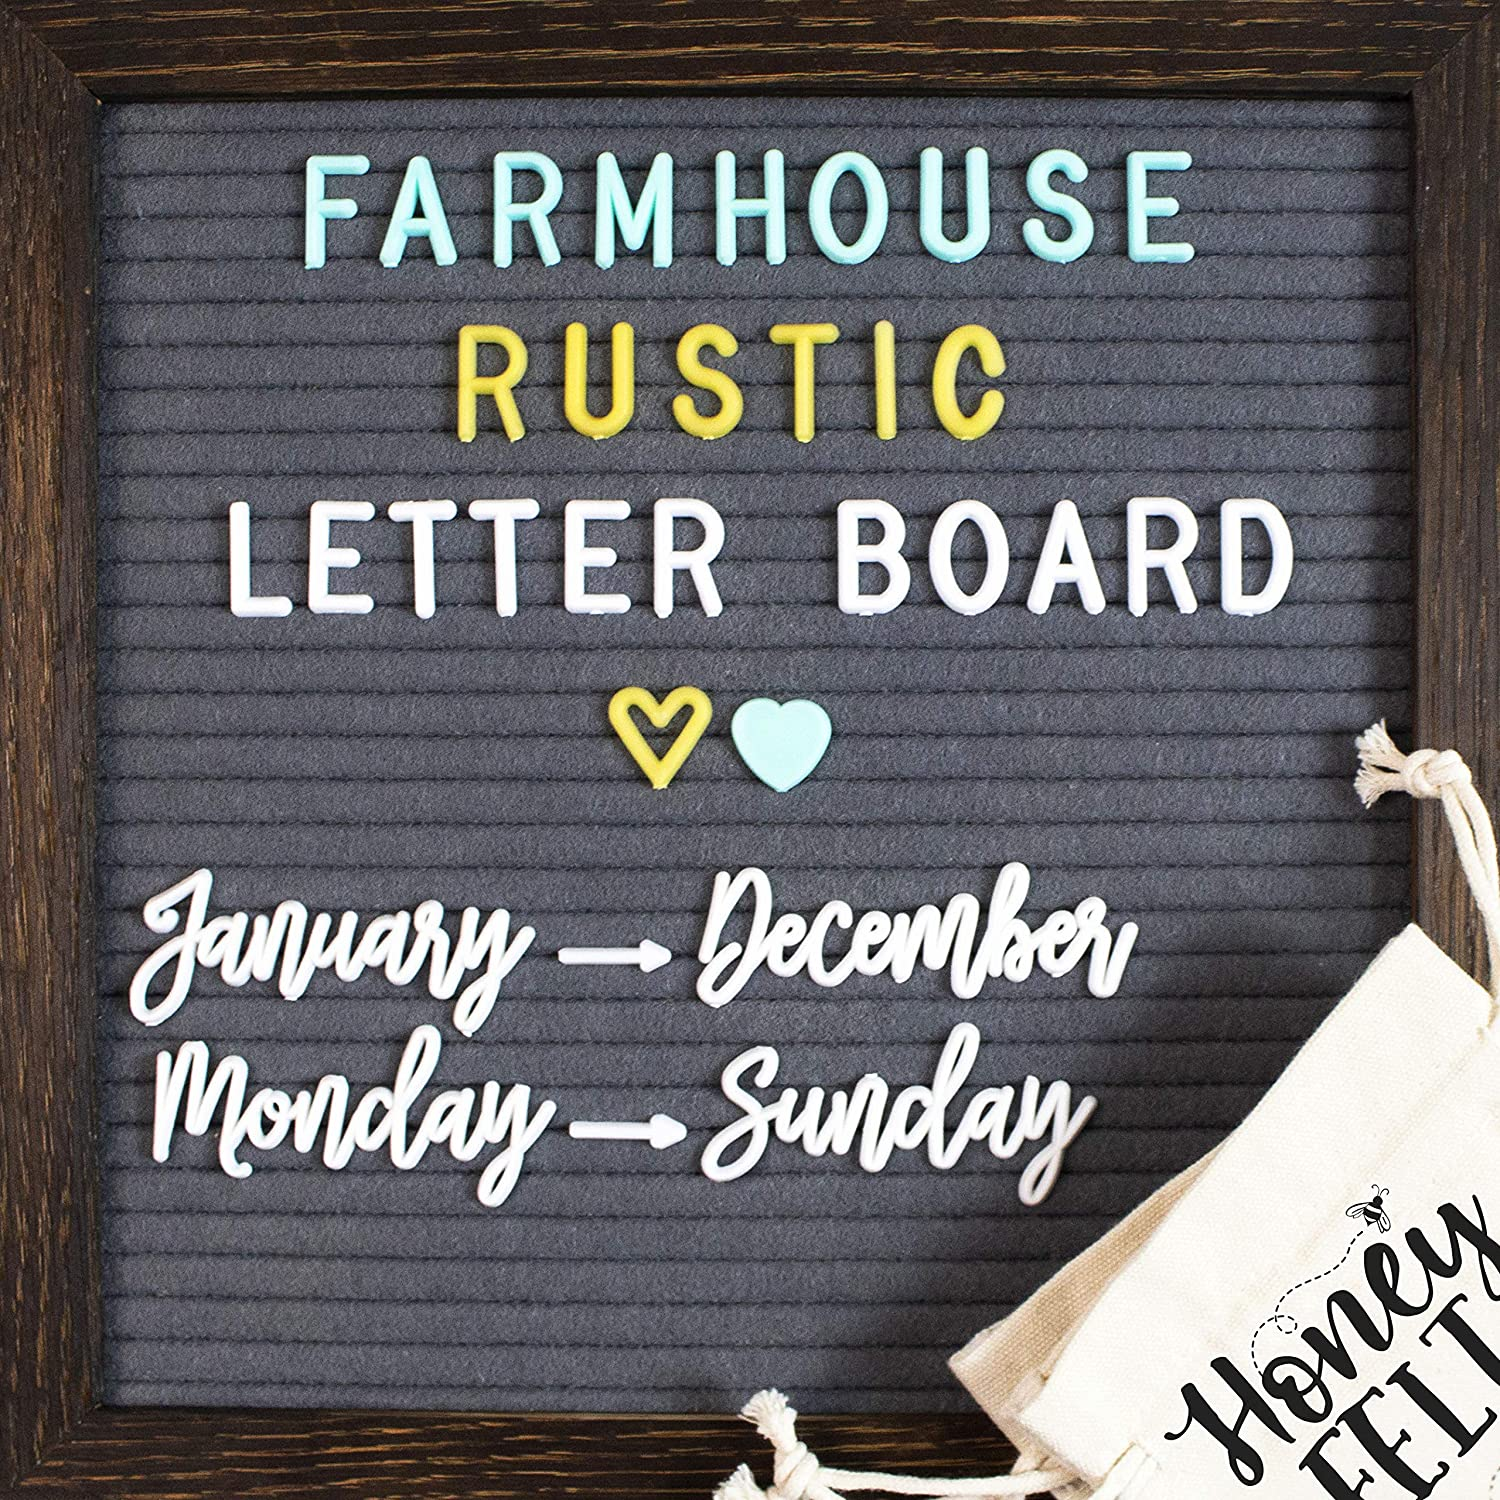 Rustic Wood Frame Gray Felt Letter Board 10x10. 723 Changeable White, Gold & Blue Letters. Months & Days Cursive Words, Symbols & Emojis. Attached Stand, 2 Letter Bags, Scissors. Farmhouse Wall Decor.